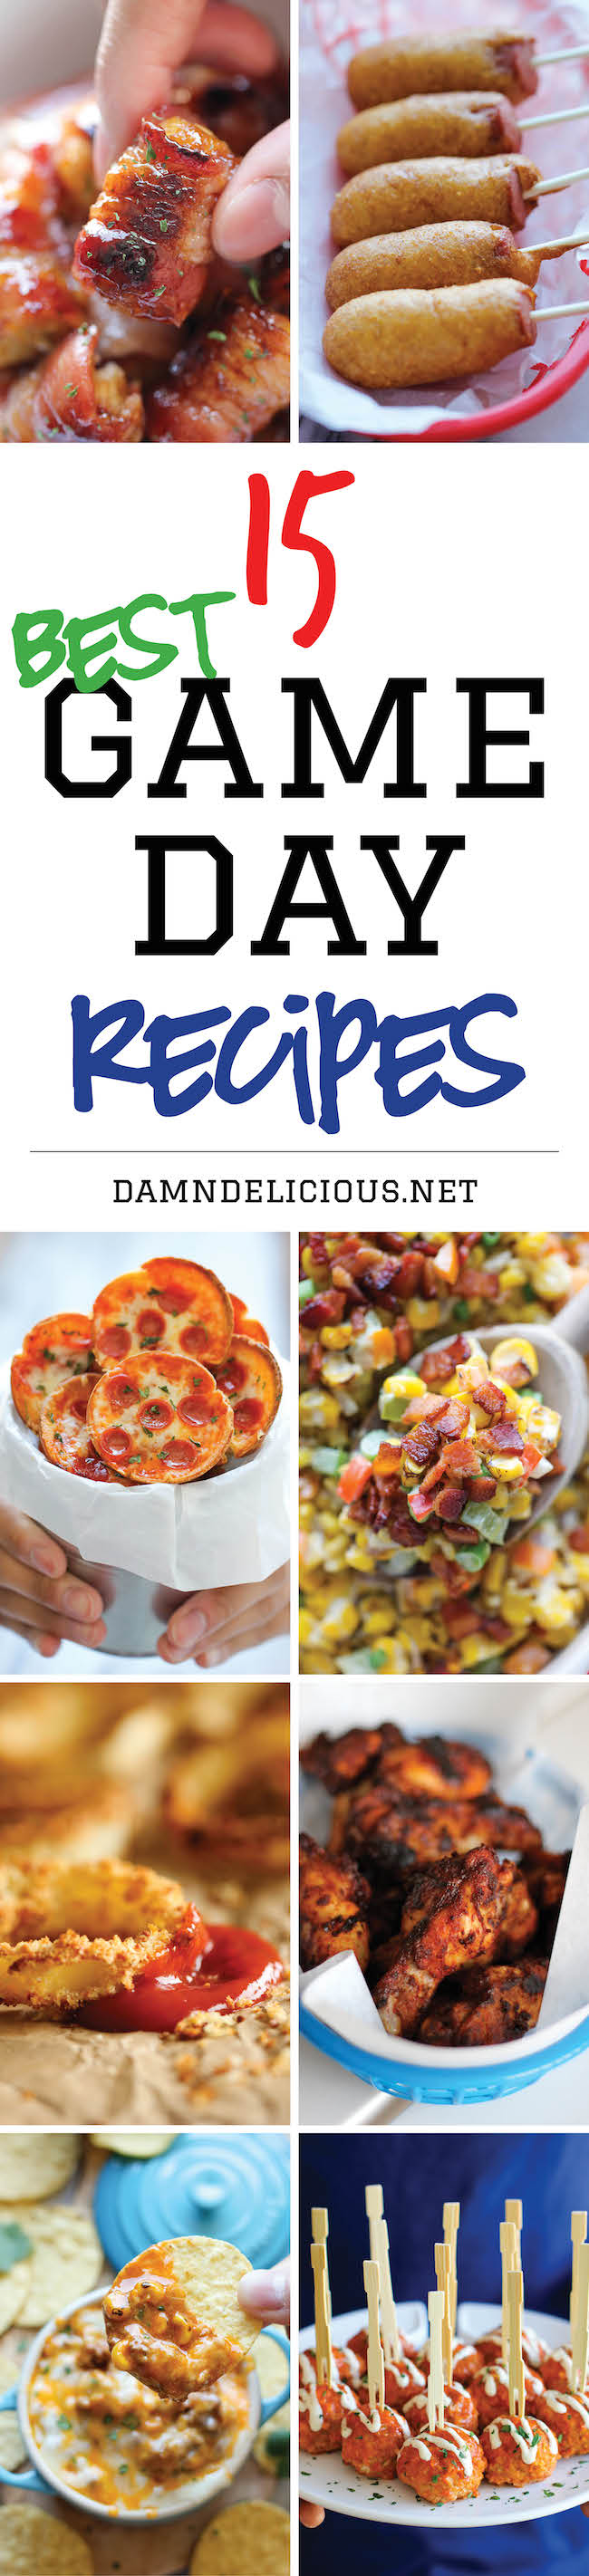 15 best game day recipes damn delicious 15 best game day recipes forumfinder Gallery